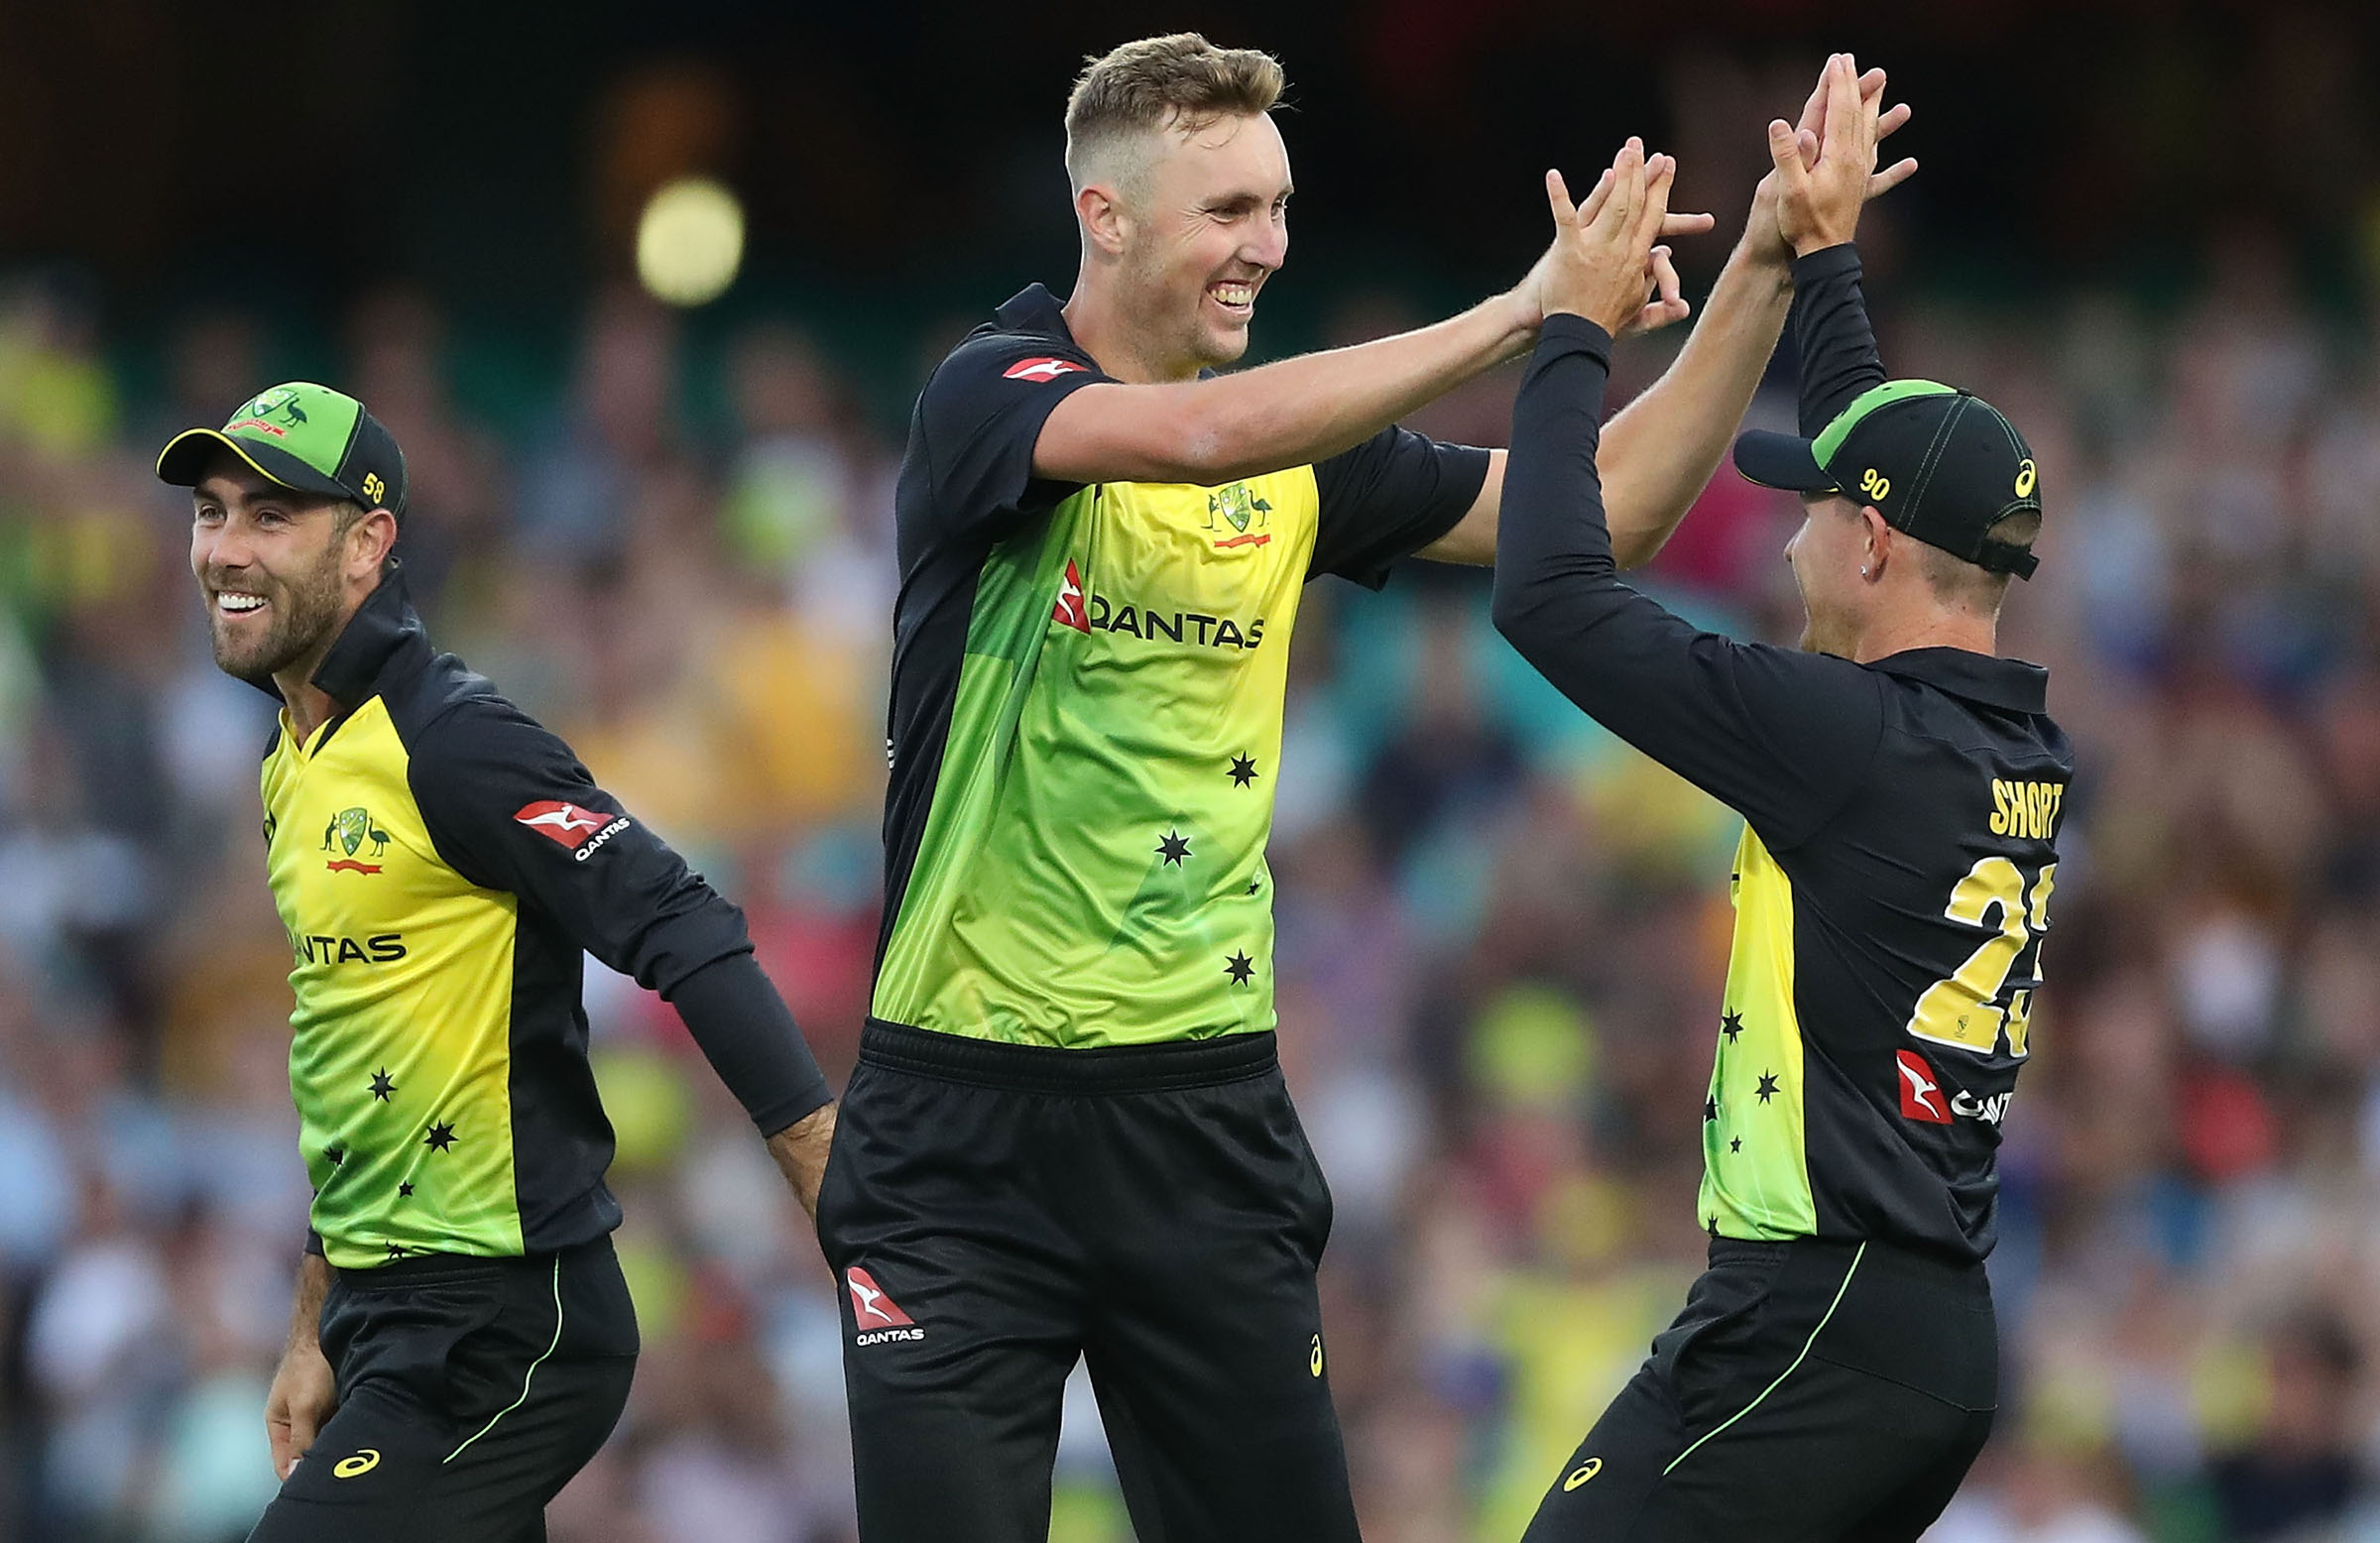 Ponting was all praise for Stanlake's promise. (Cricket Australia)